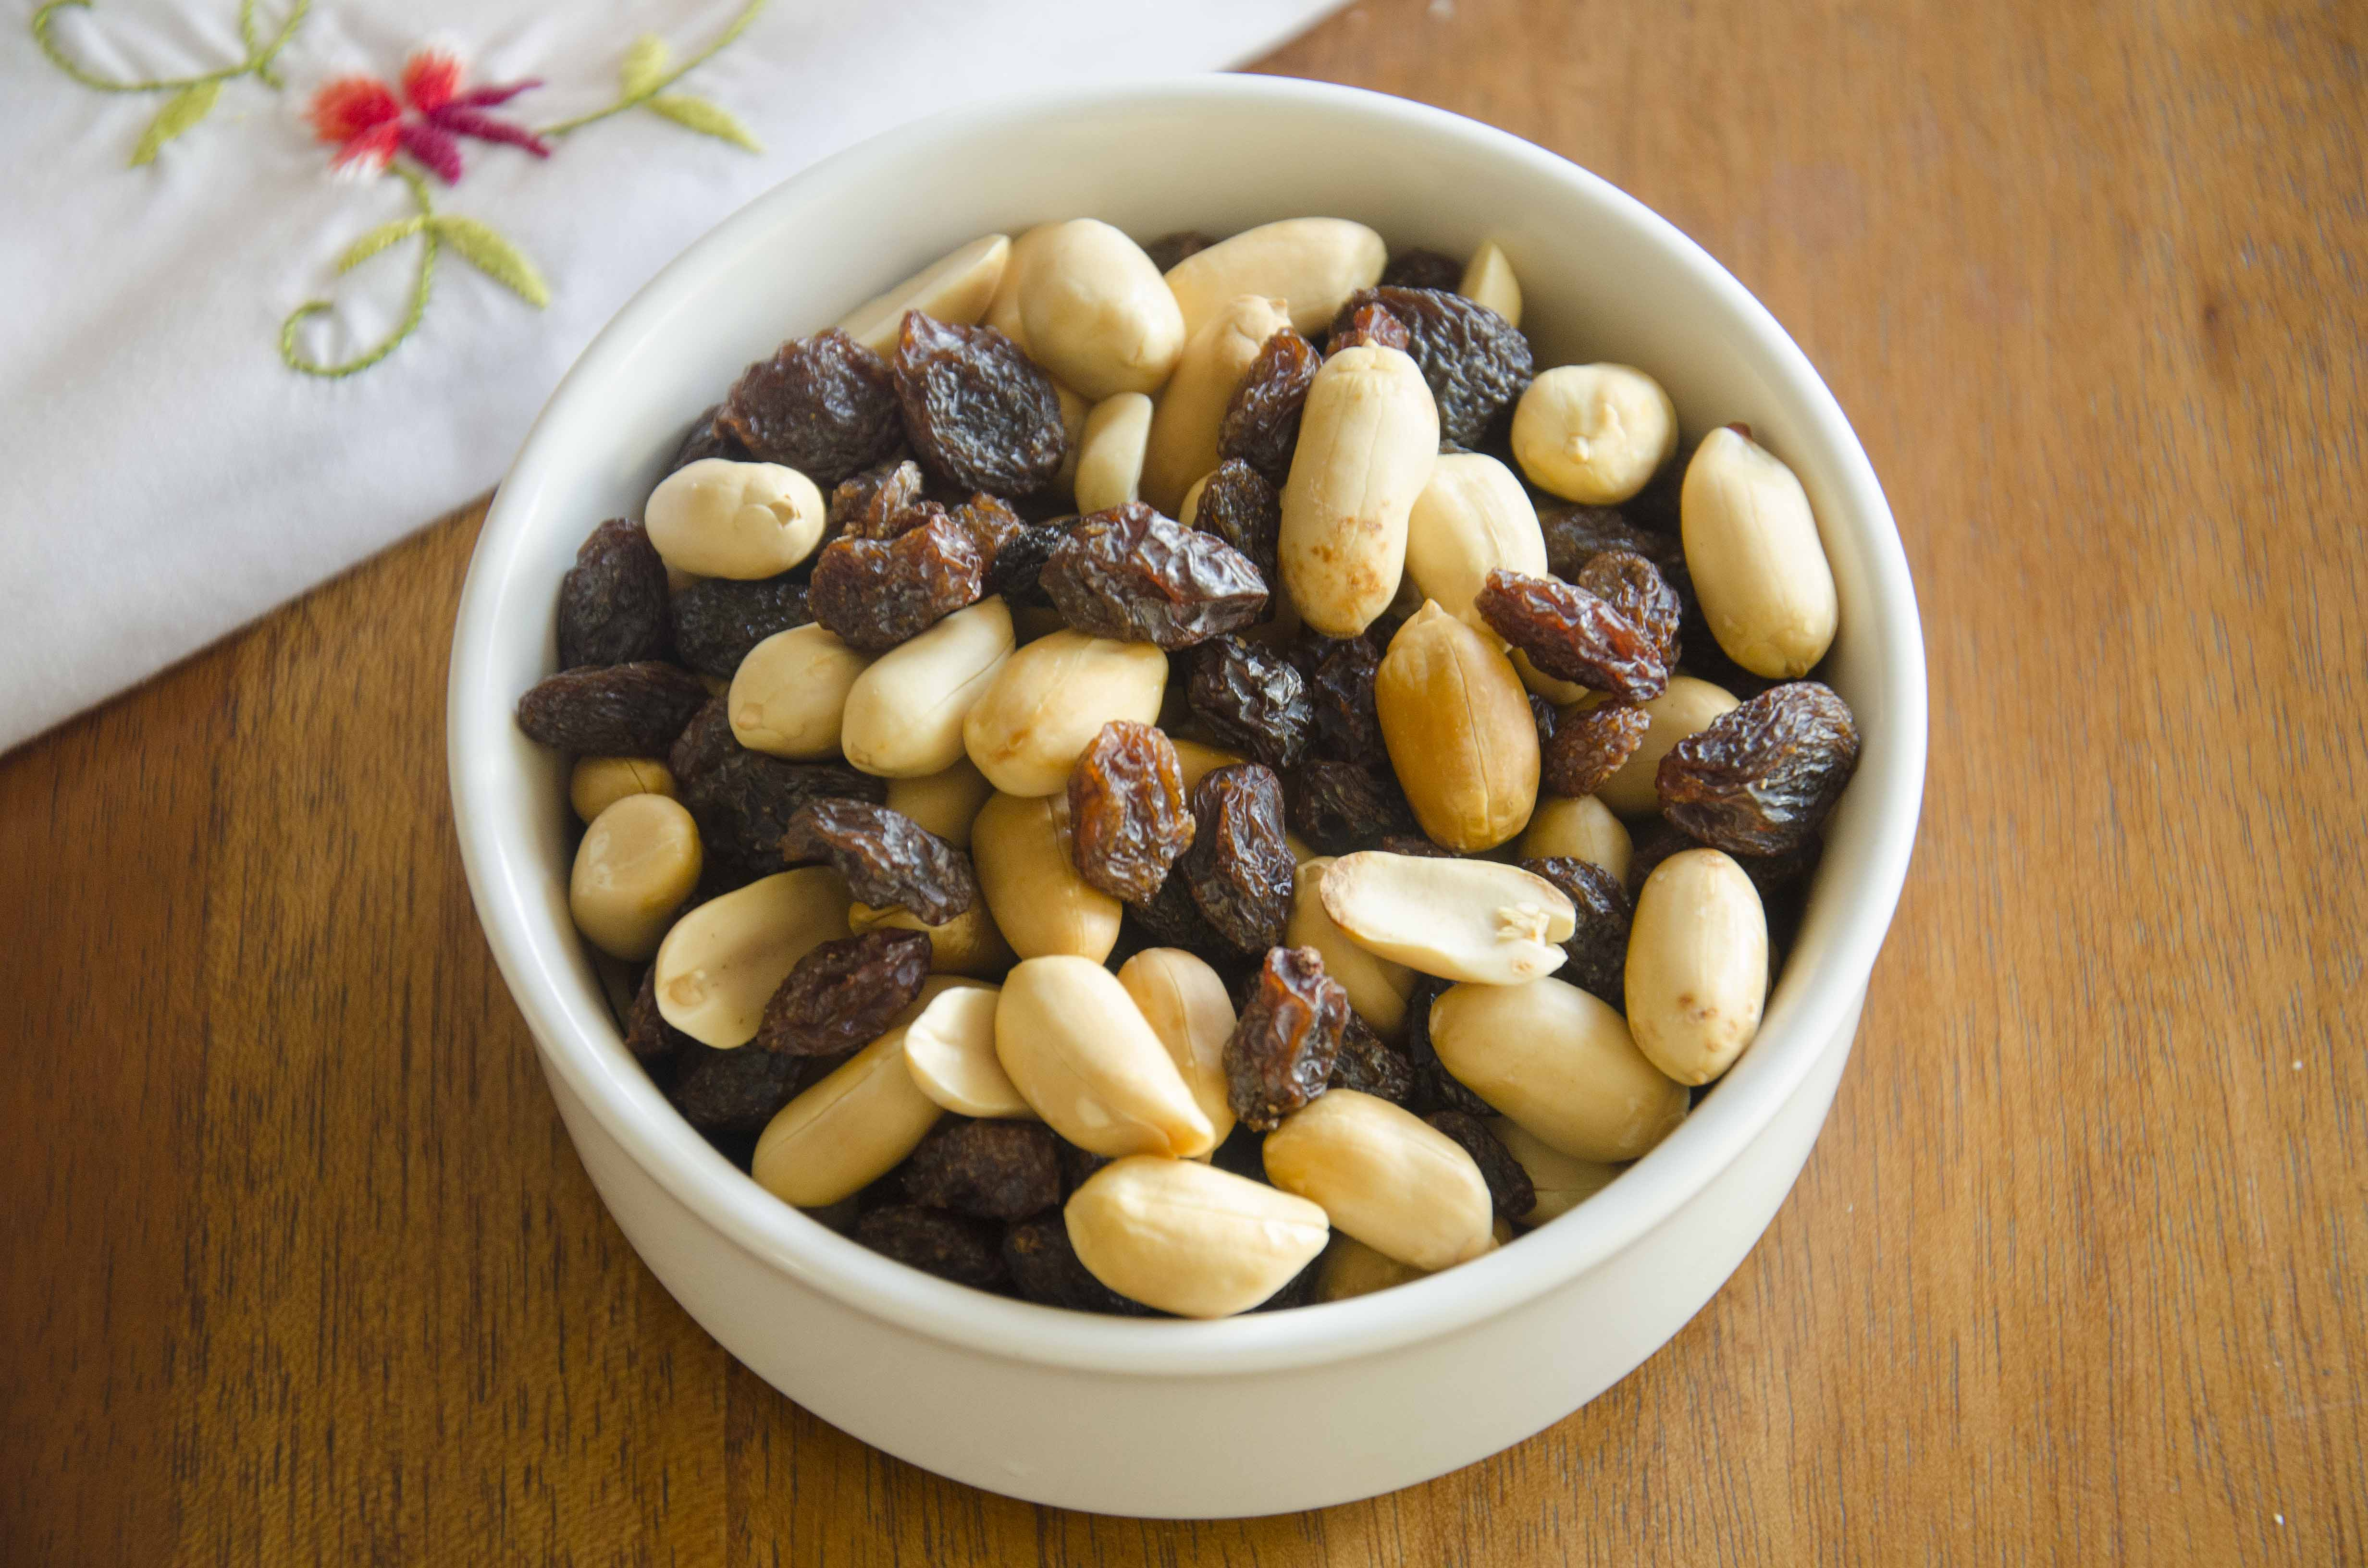 Roasted peanuts, raisins and napkin